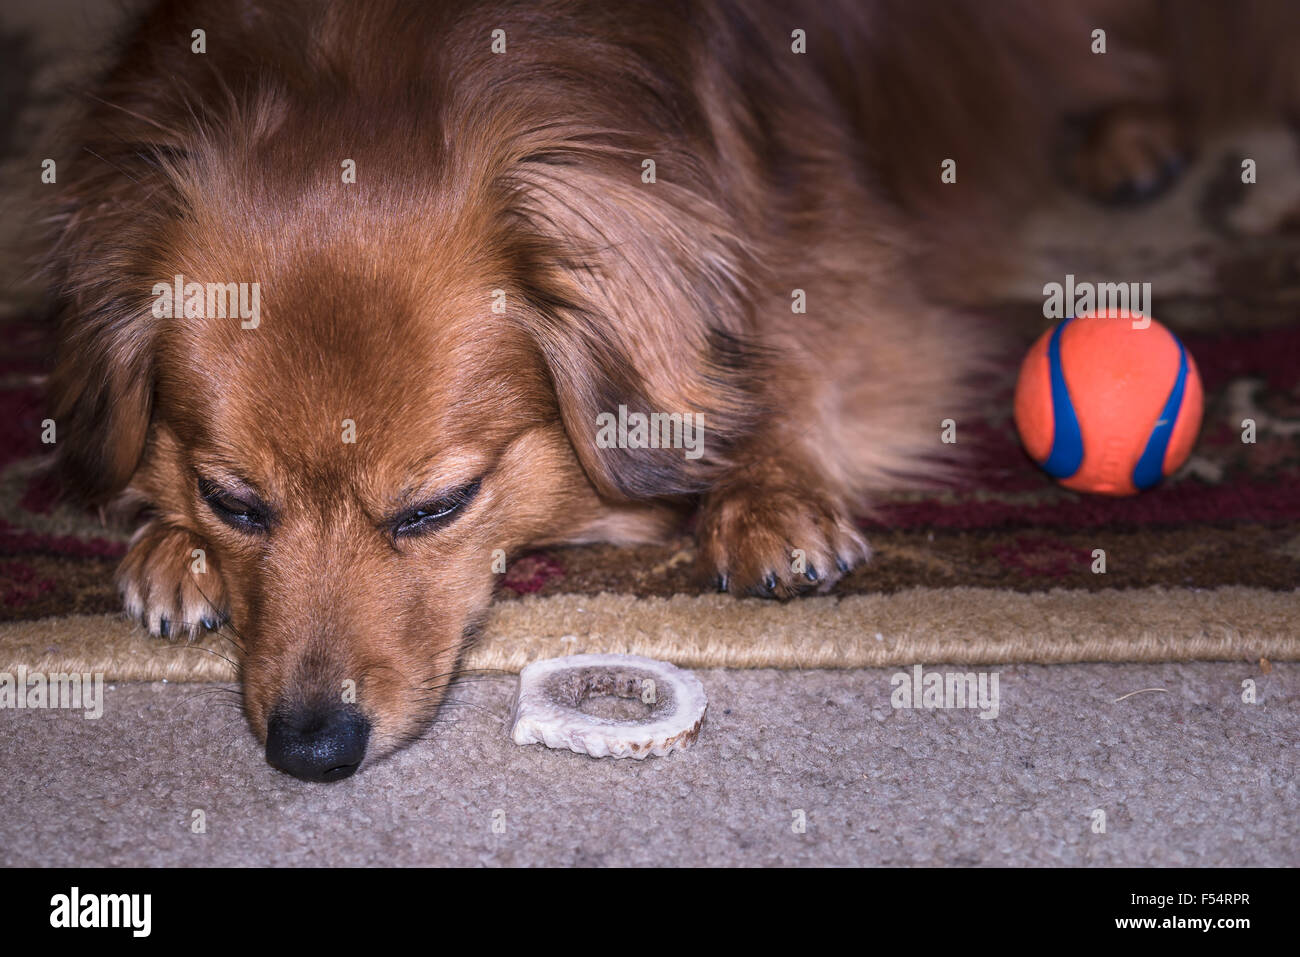 Cute dog but sad faced, or maybe just tired... next to his favorite ball. Stock Photo